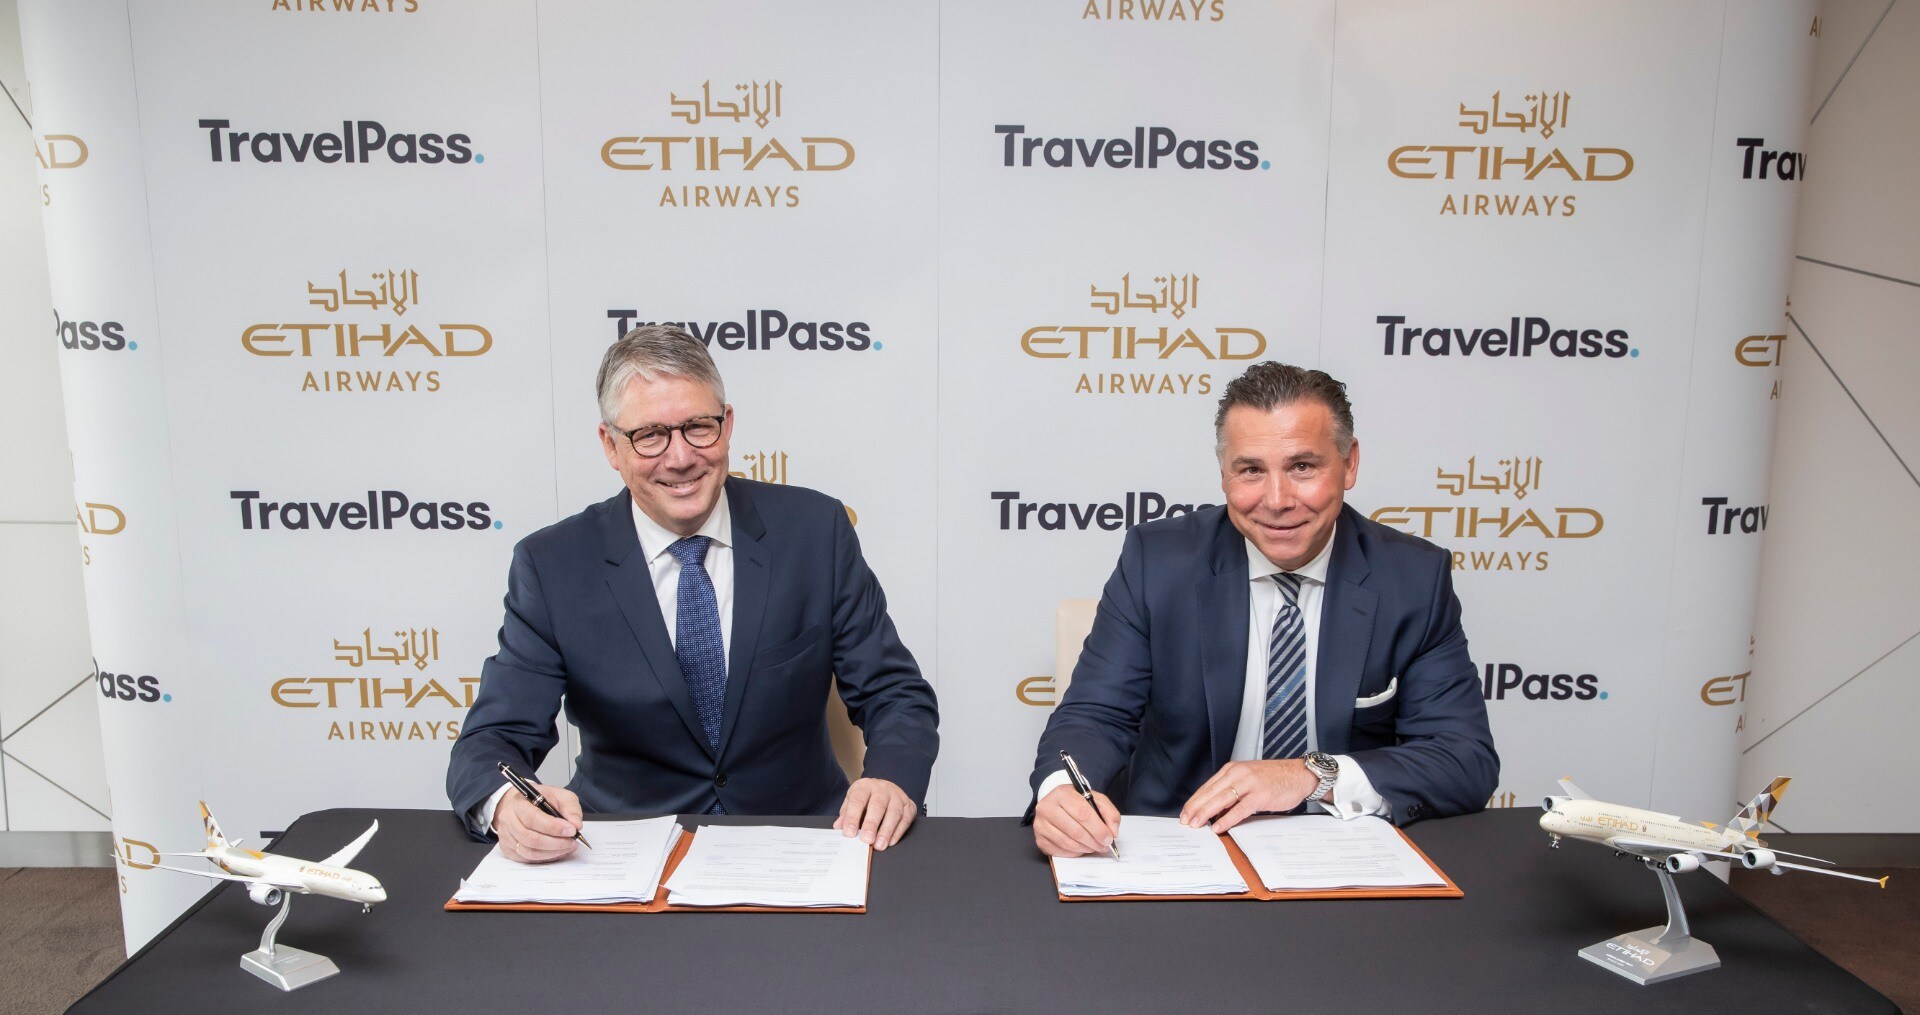 etihad-launches-travelpass